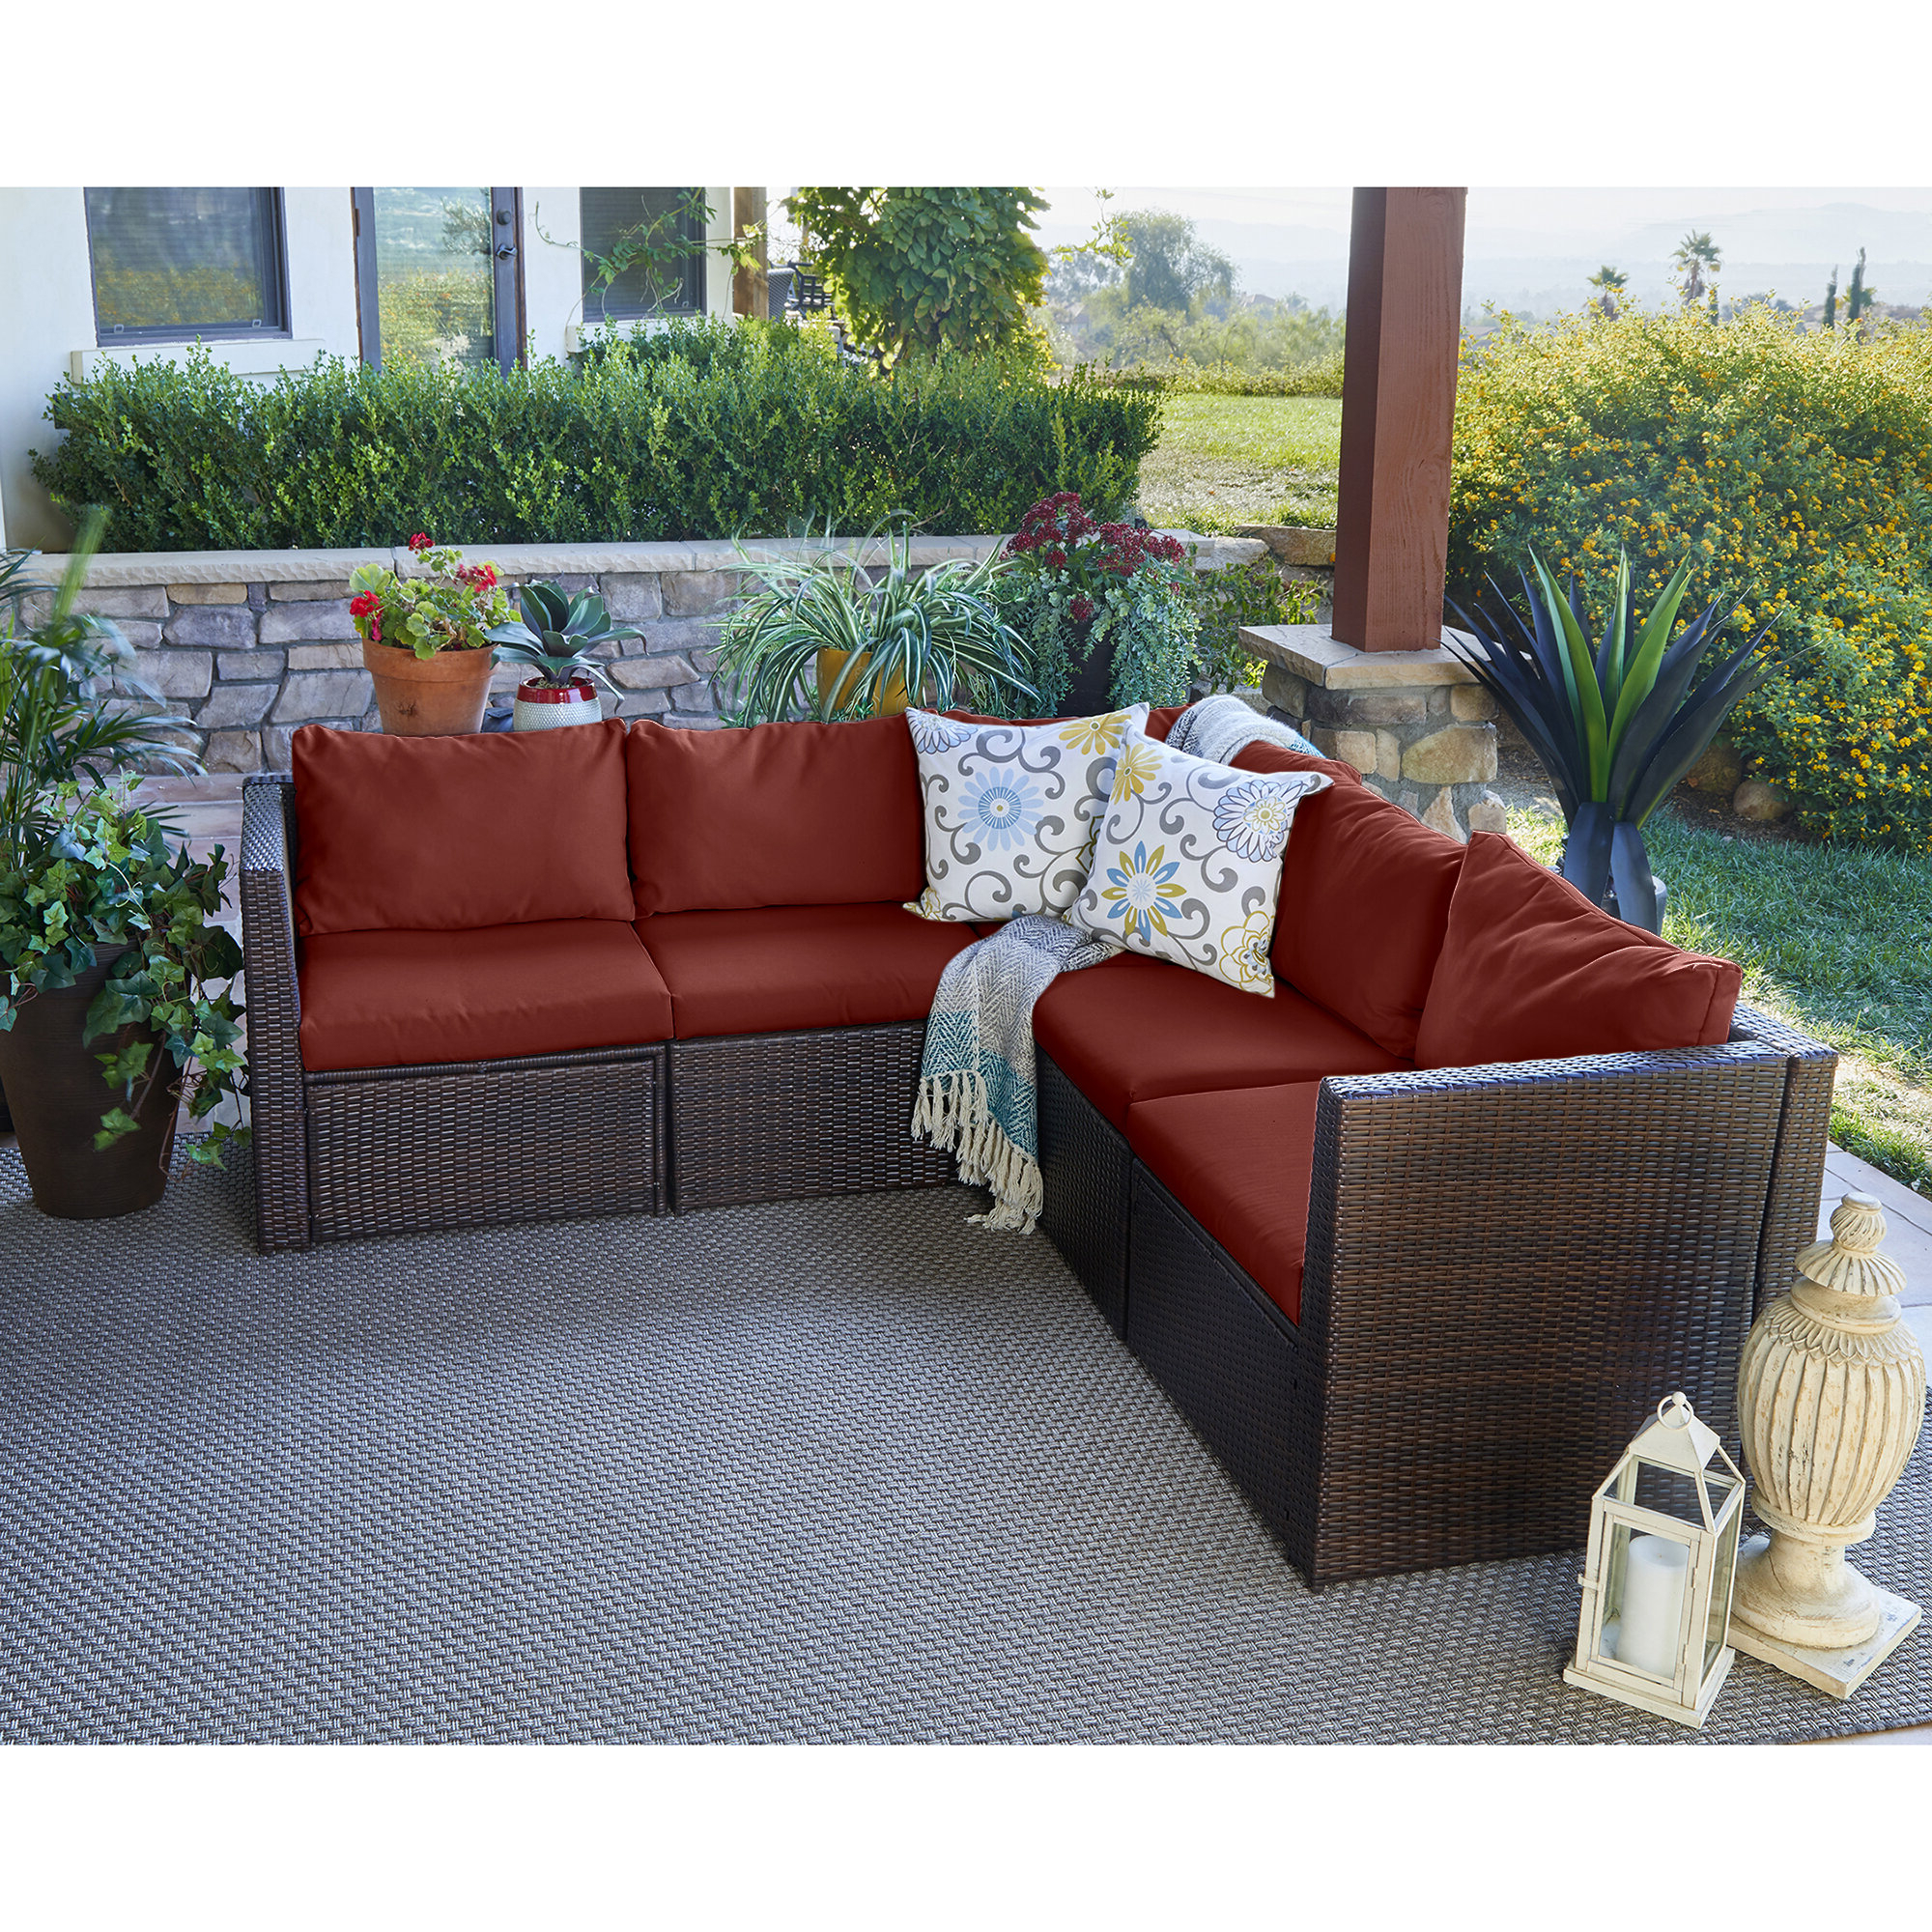 Burruss Patio Sectionals With Cushions Pertaining To Most Up To Date Larsen Patio Sectional With Cushions (Gallery 10 of 25)